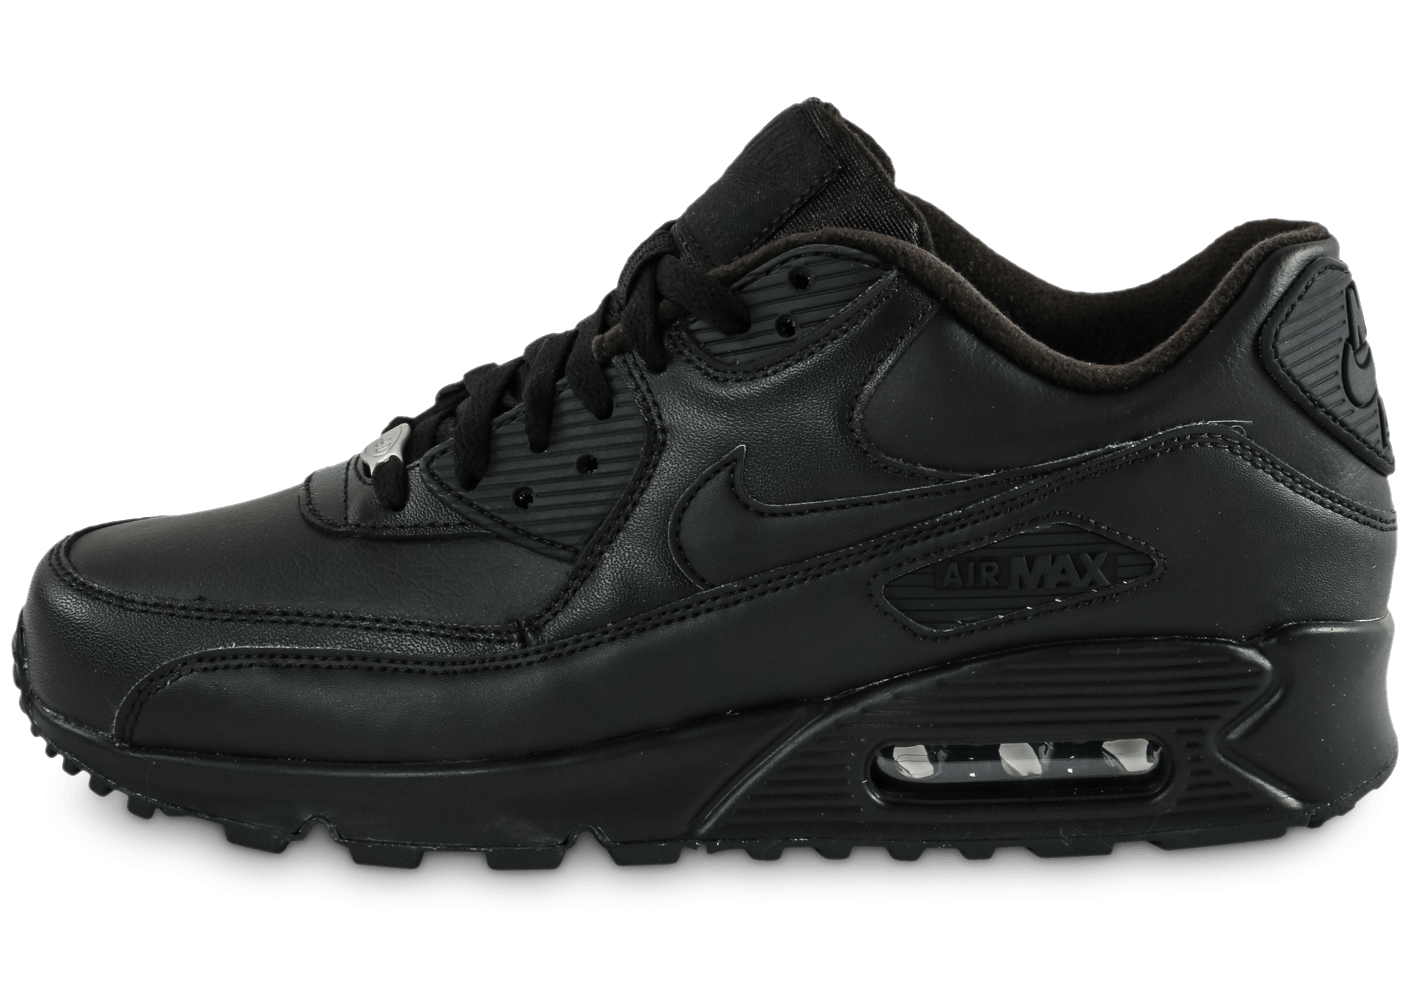 49c12e3c0e6 Nike Air Max 90 Leather noire - Chaussures Baskets homme - Chausport